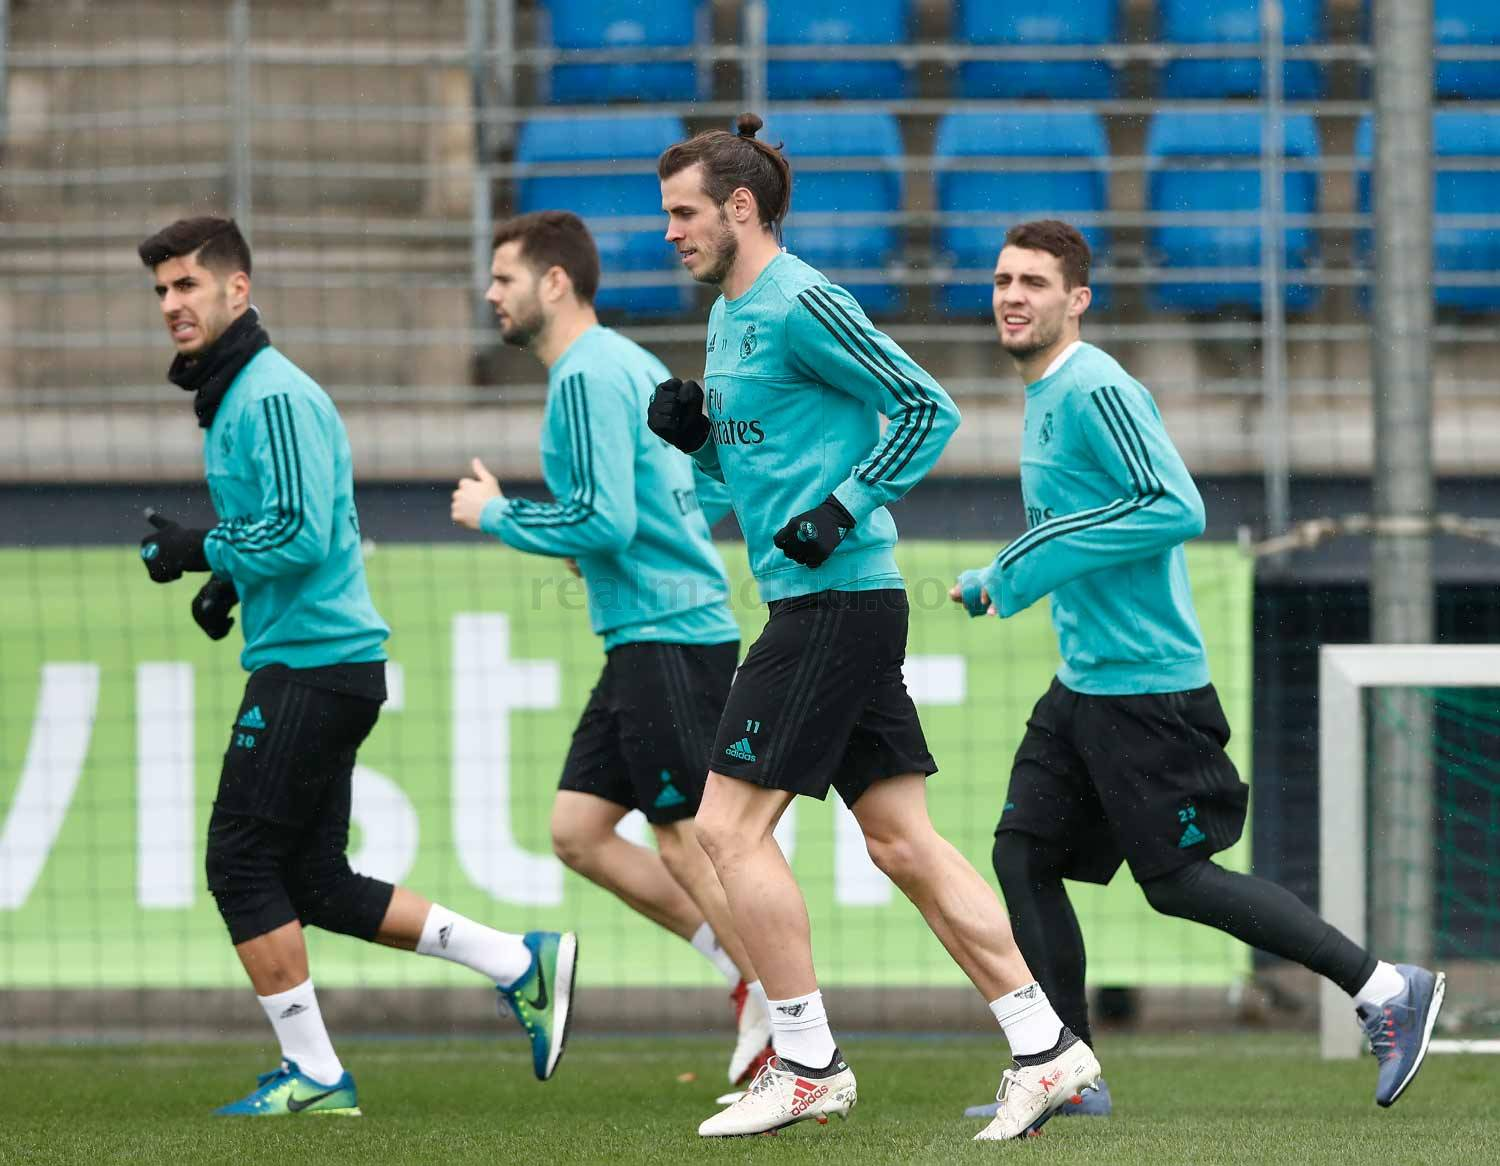 Real Madrid - Entrenamiento del Real Madrid - 01-03-2018